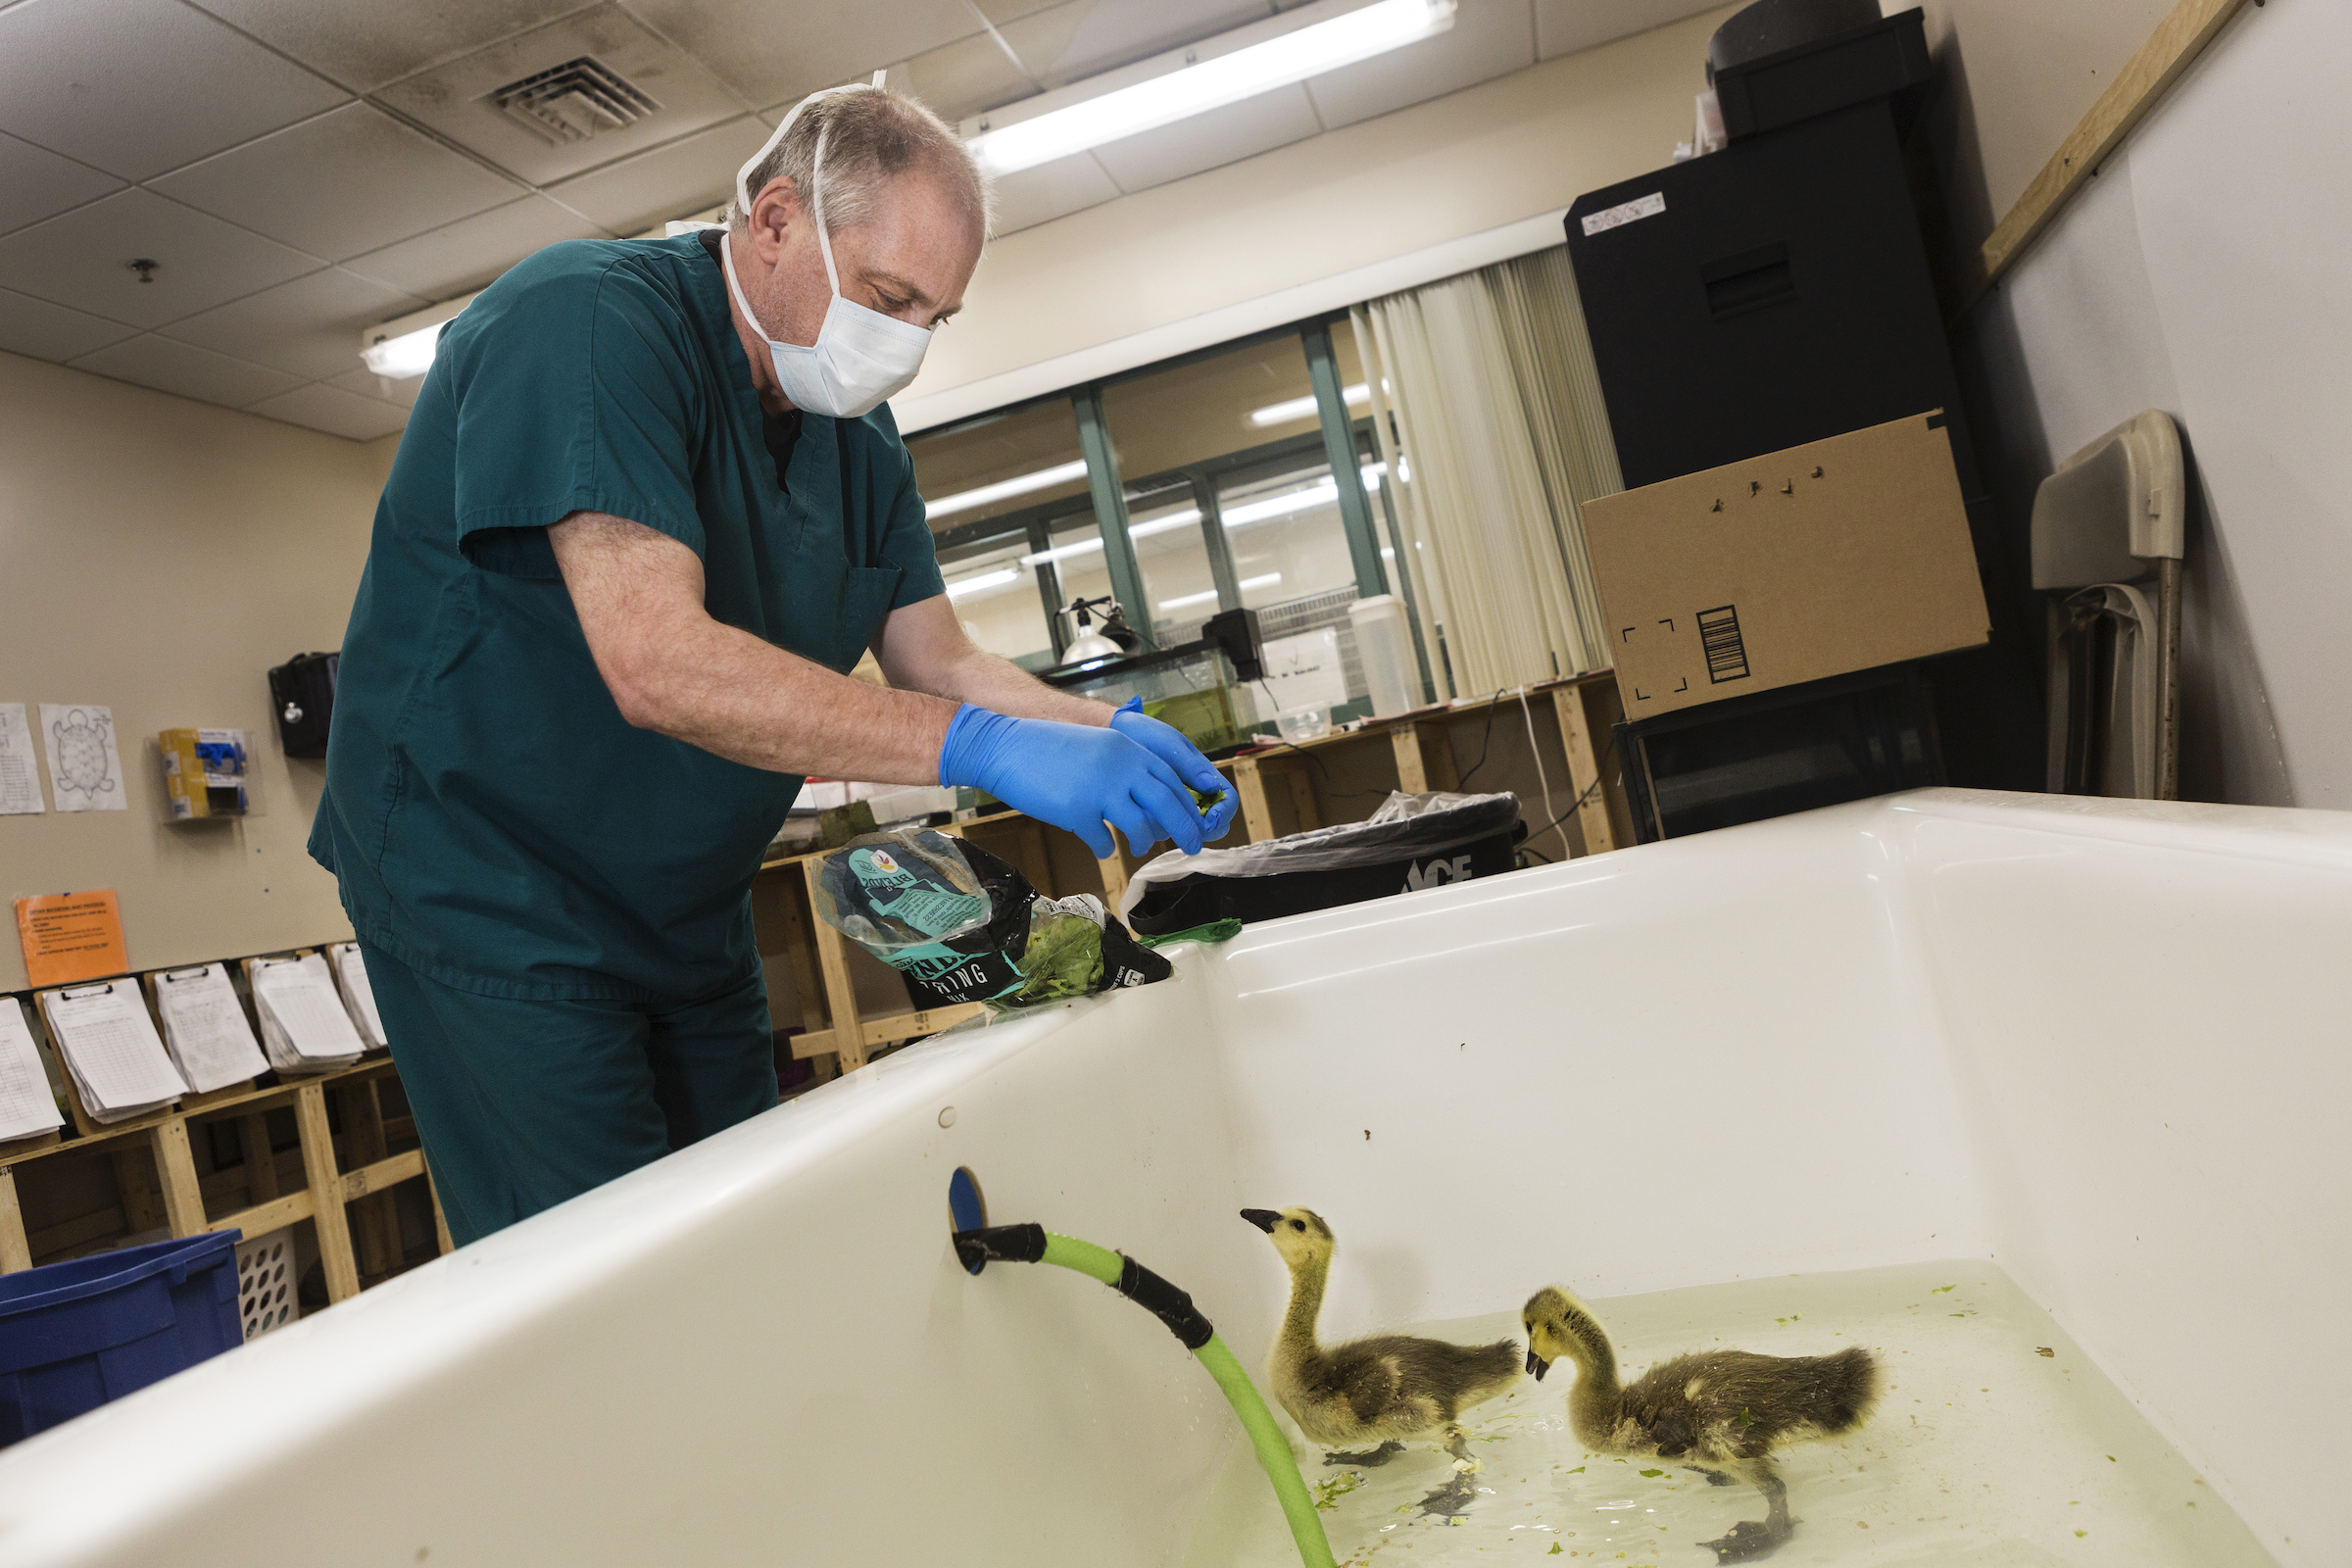 Veterinary technician Marco Venturoli feeds baby Canada geese as they take a swim in a bathtub.